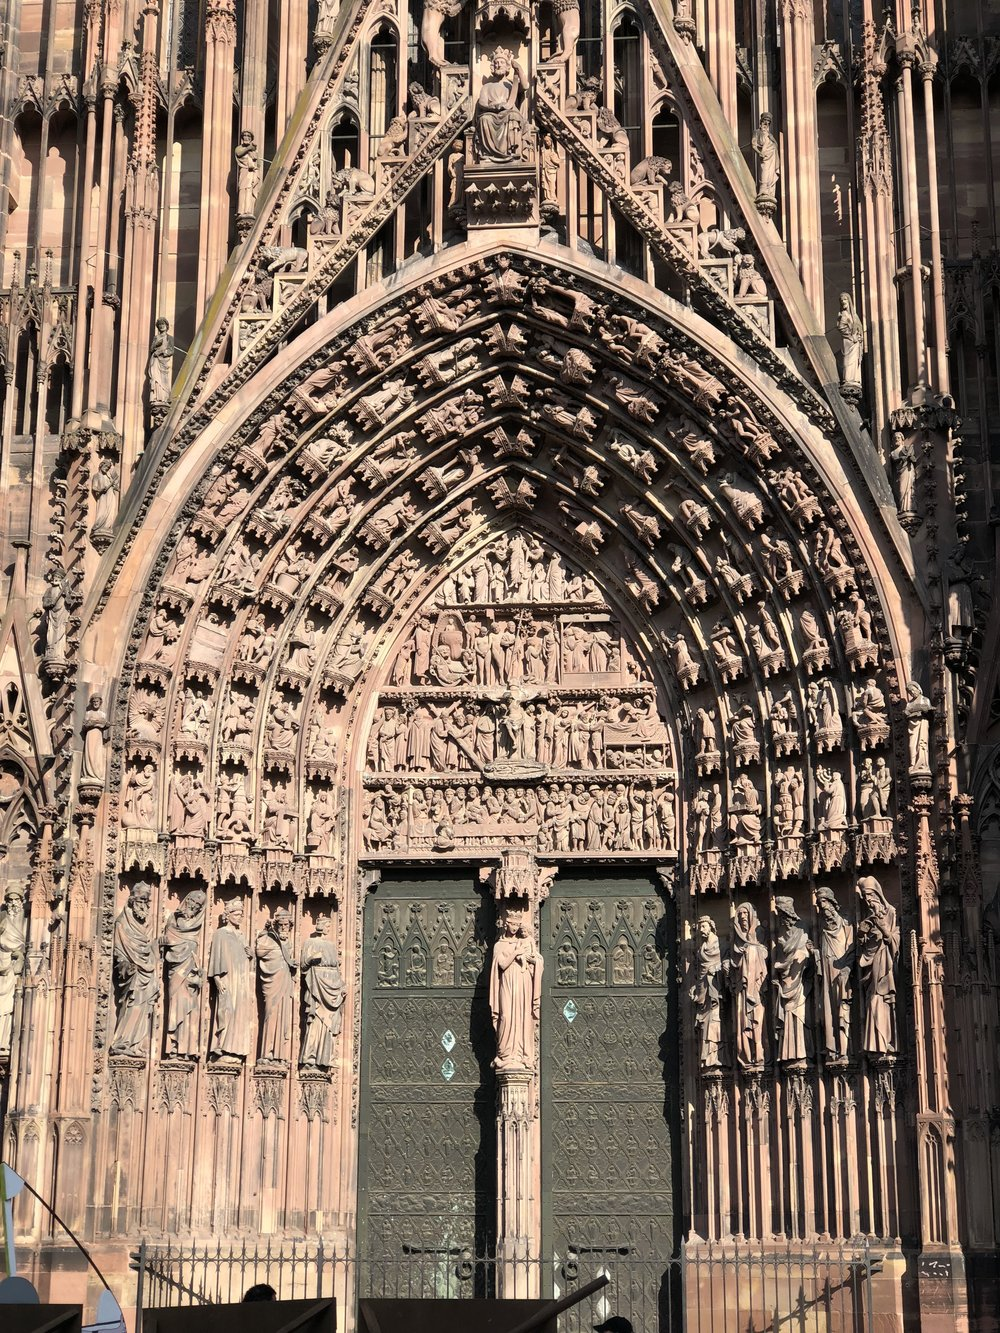 Main Entrance of the Strasbourg Cathedral